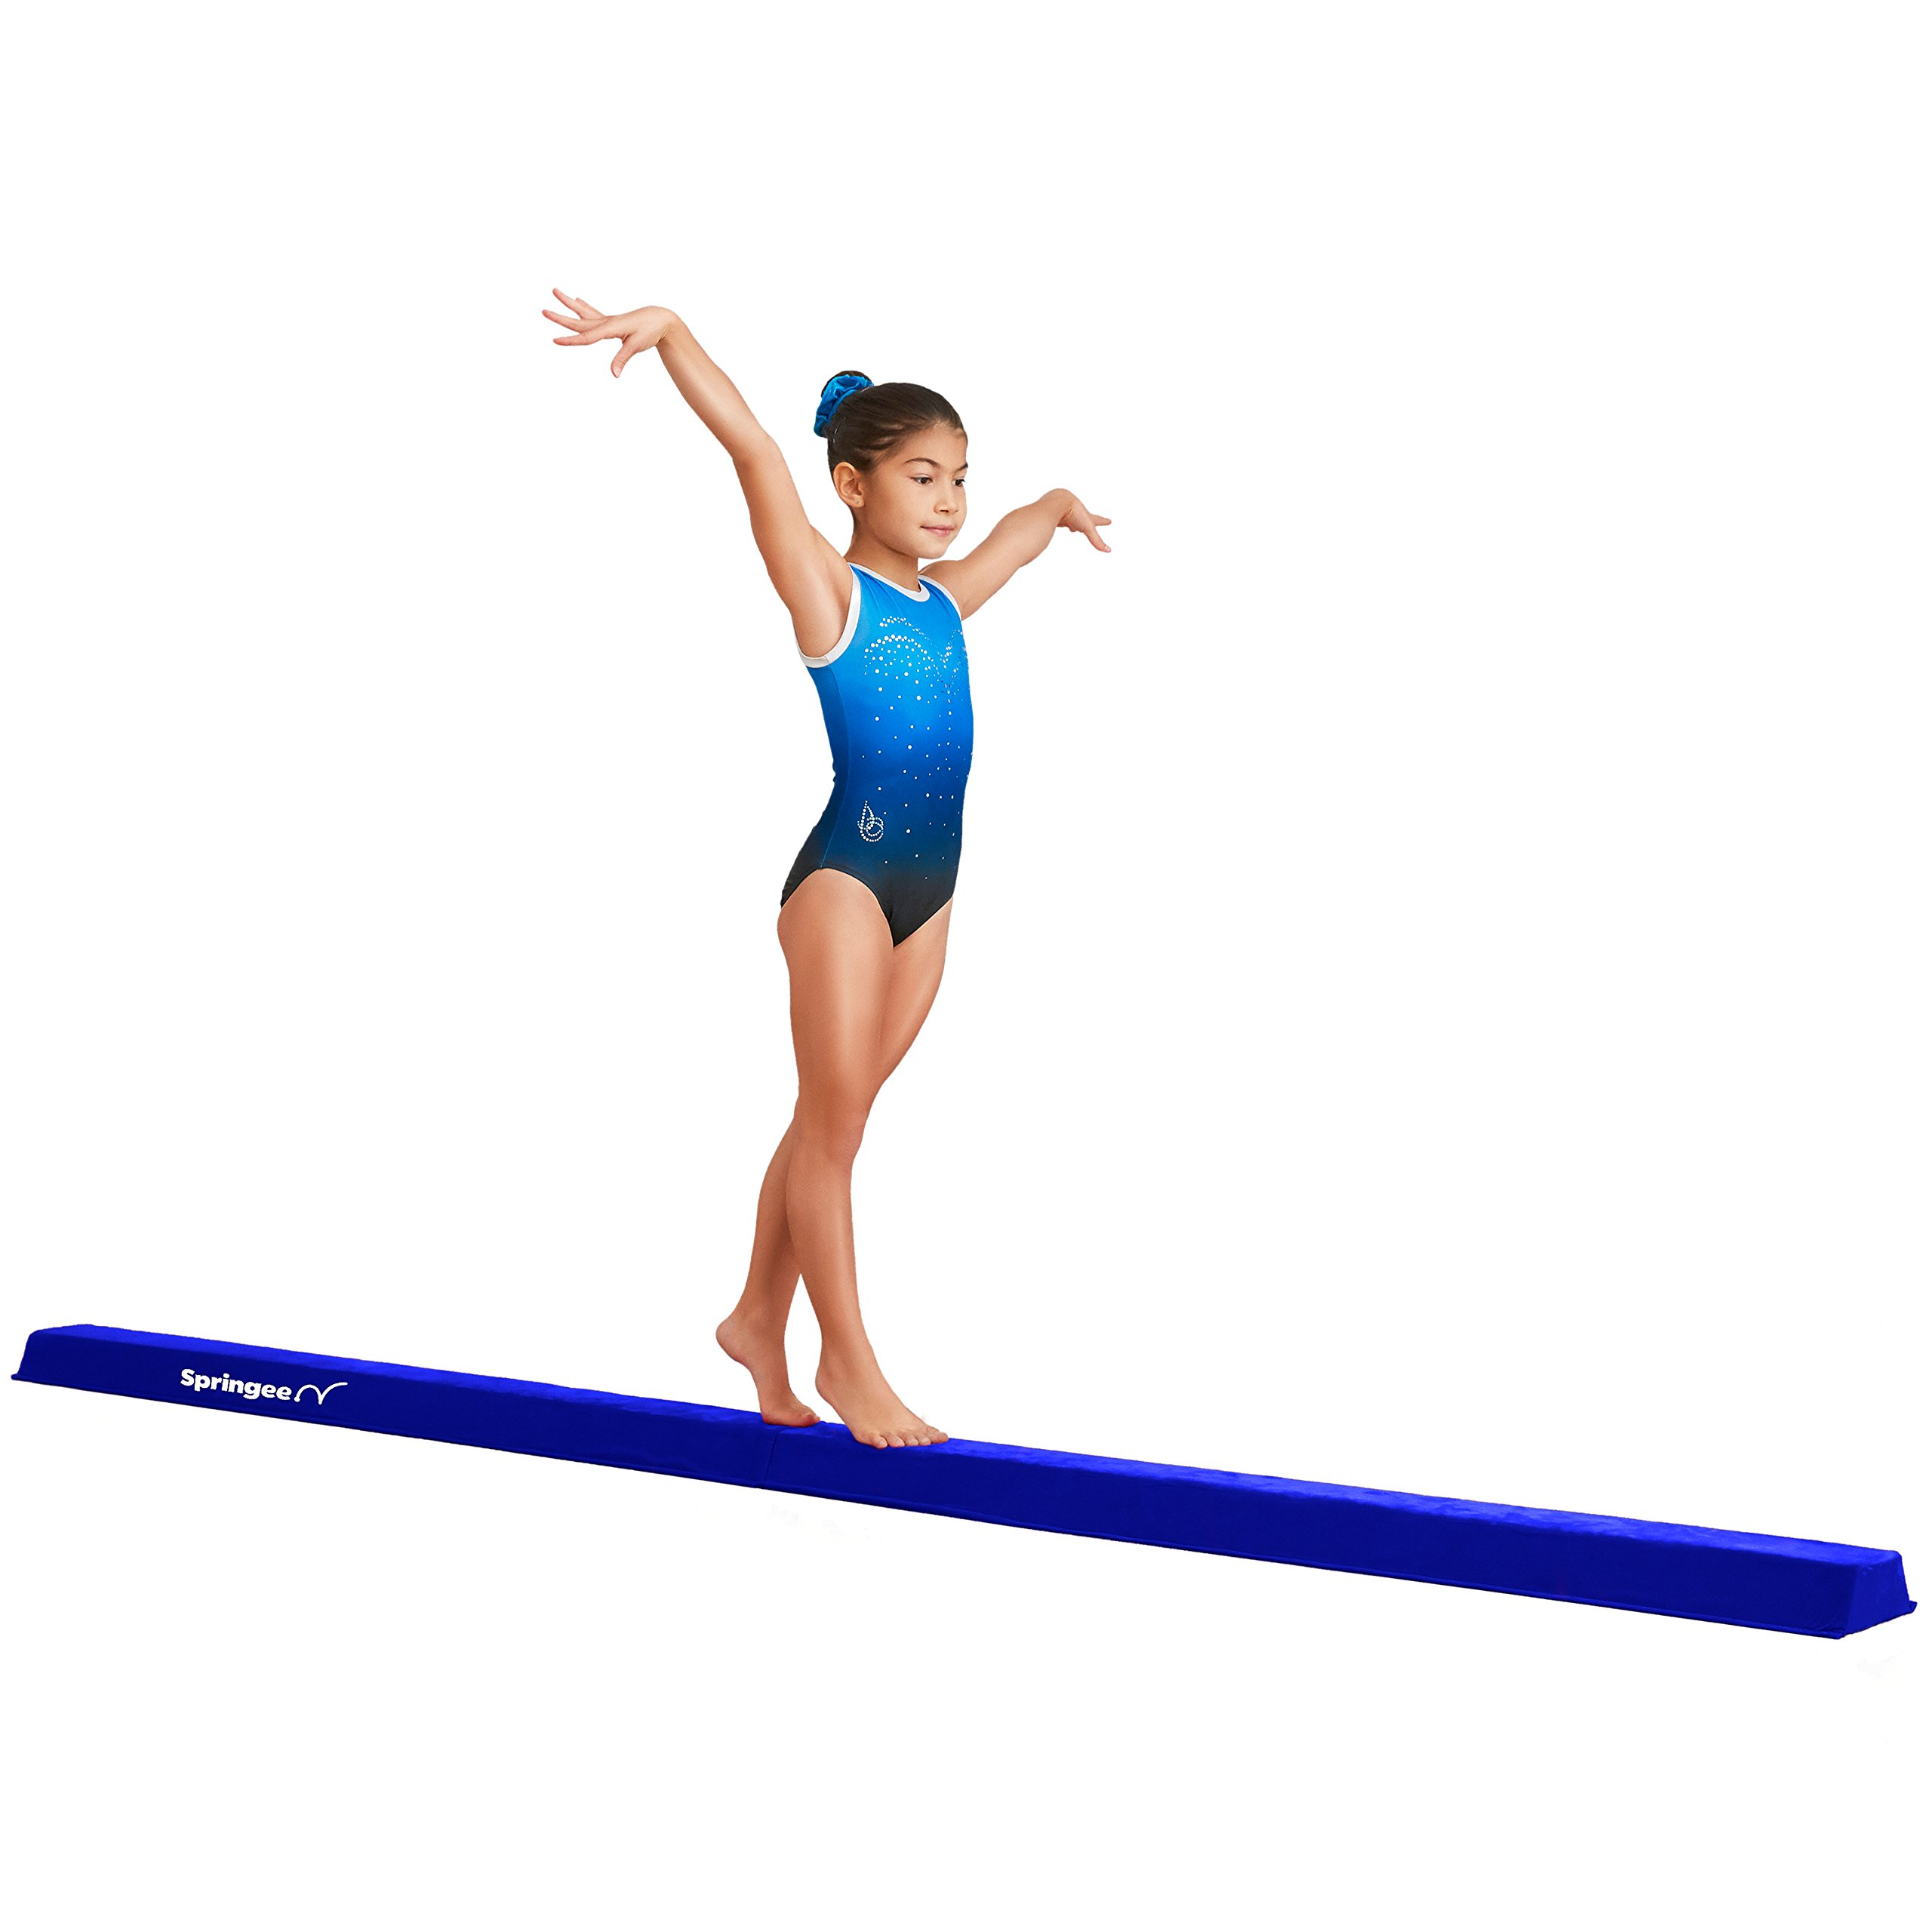 9.5' Balance Beam - Folding Gymnastic Beam Girls, Boys, Teens - Increase Confidence Skill in Your Kids – Extra Firm Gymnastics Equipment Home Use (Blue)